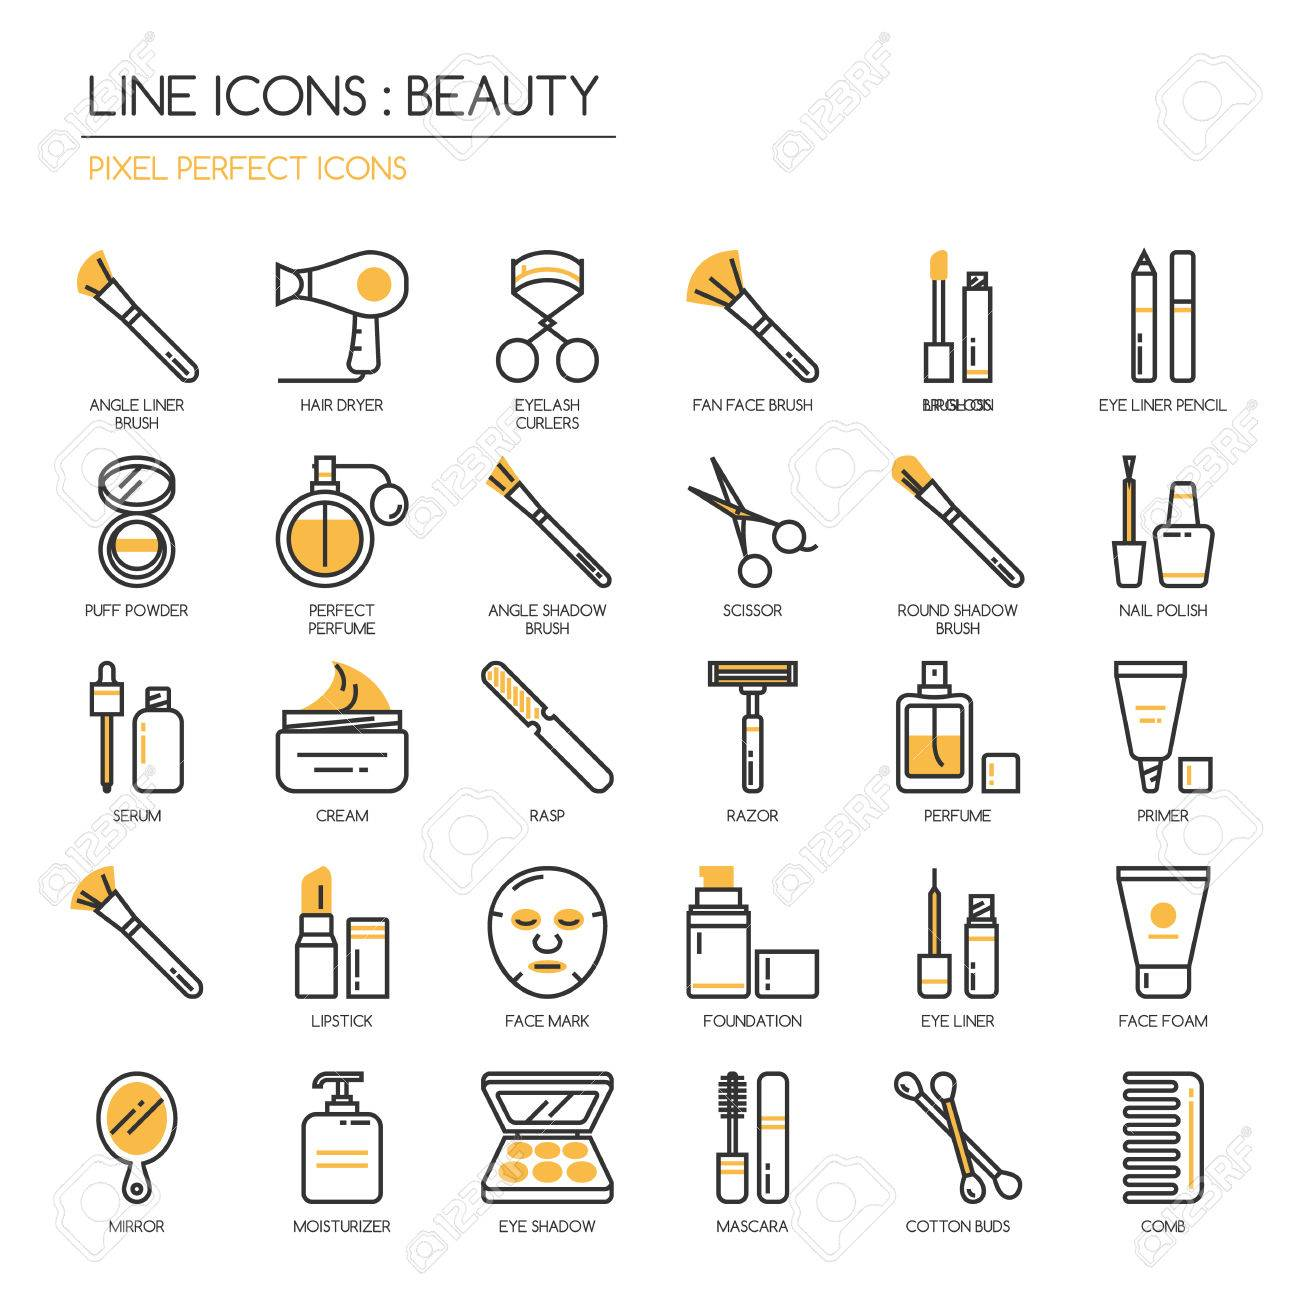 Beauty , thin line icons set ,pixel perfect icon - 57267022